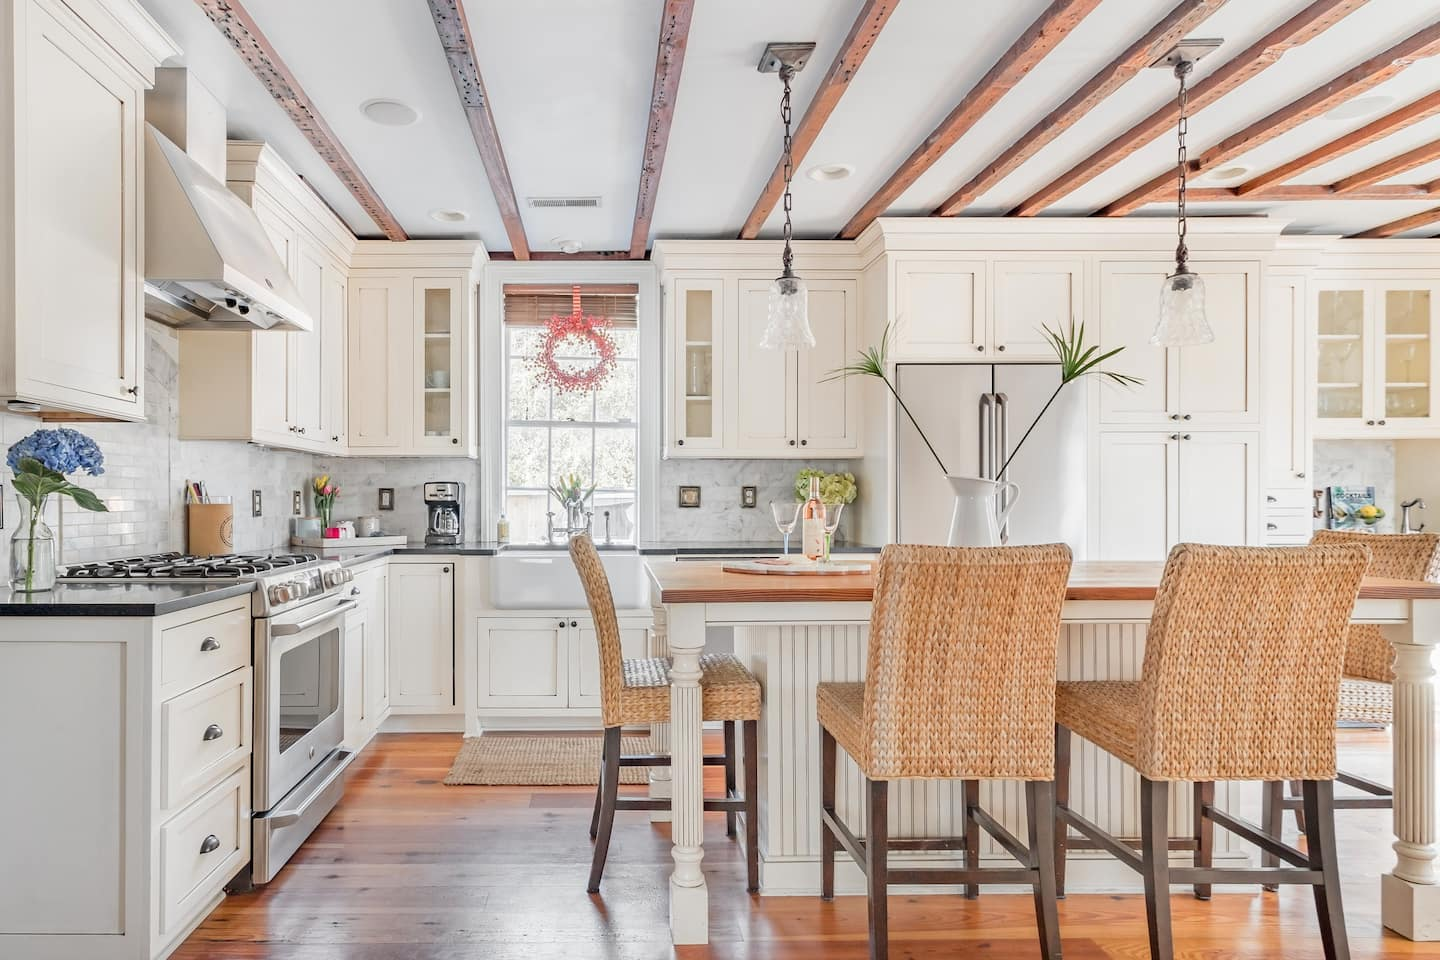 Best Airbnbs in South Carolina